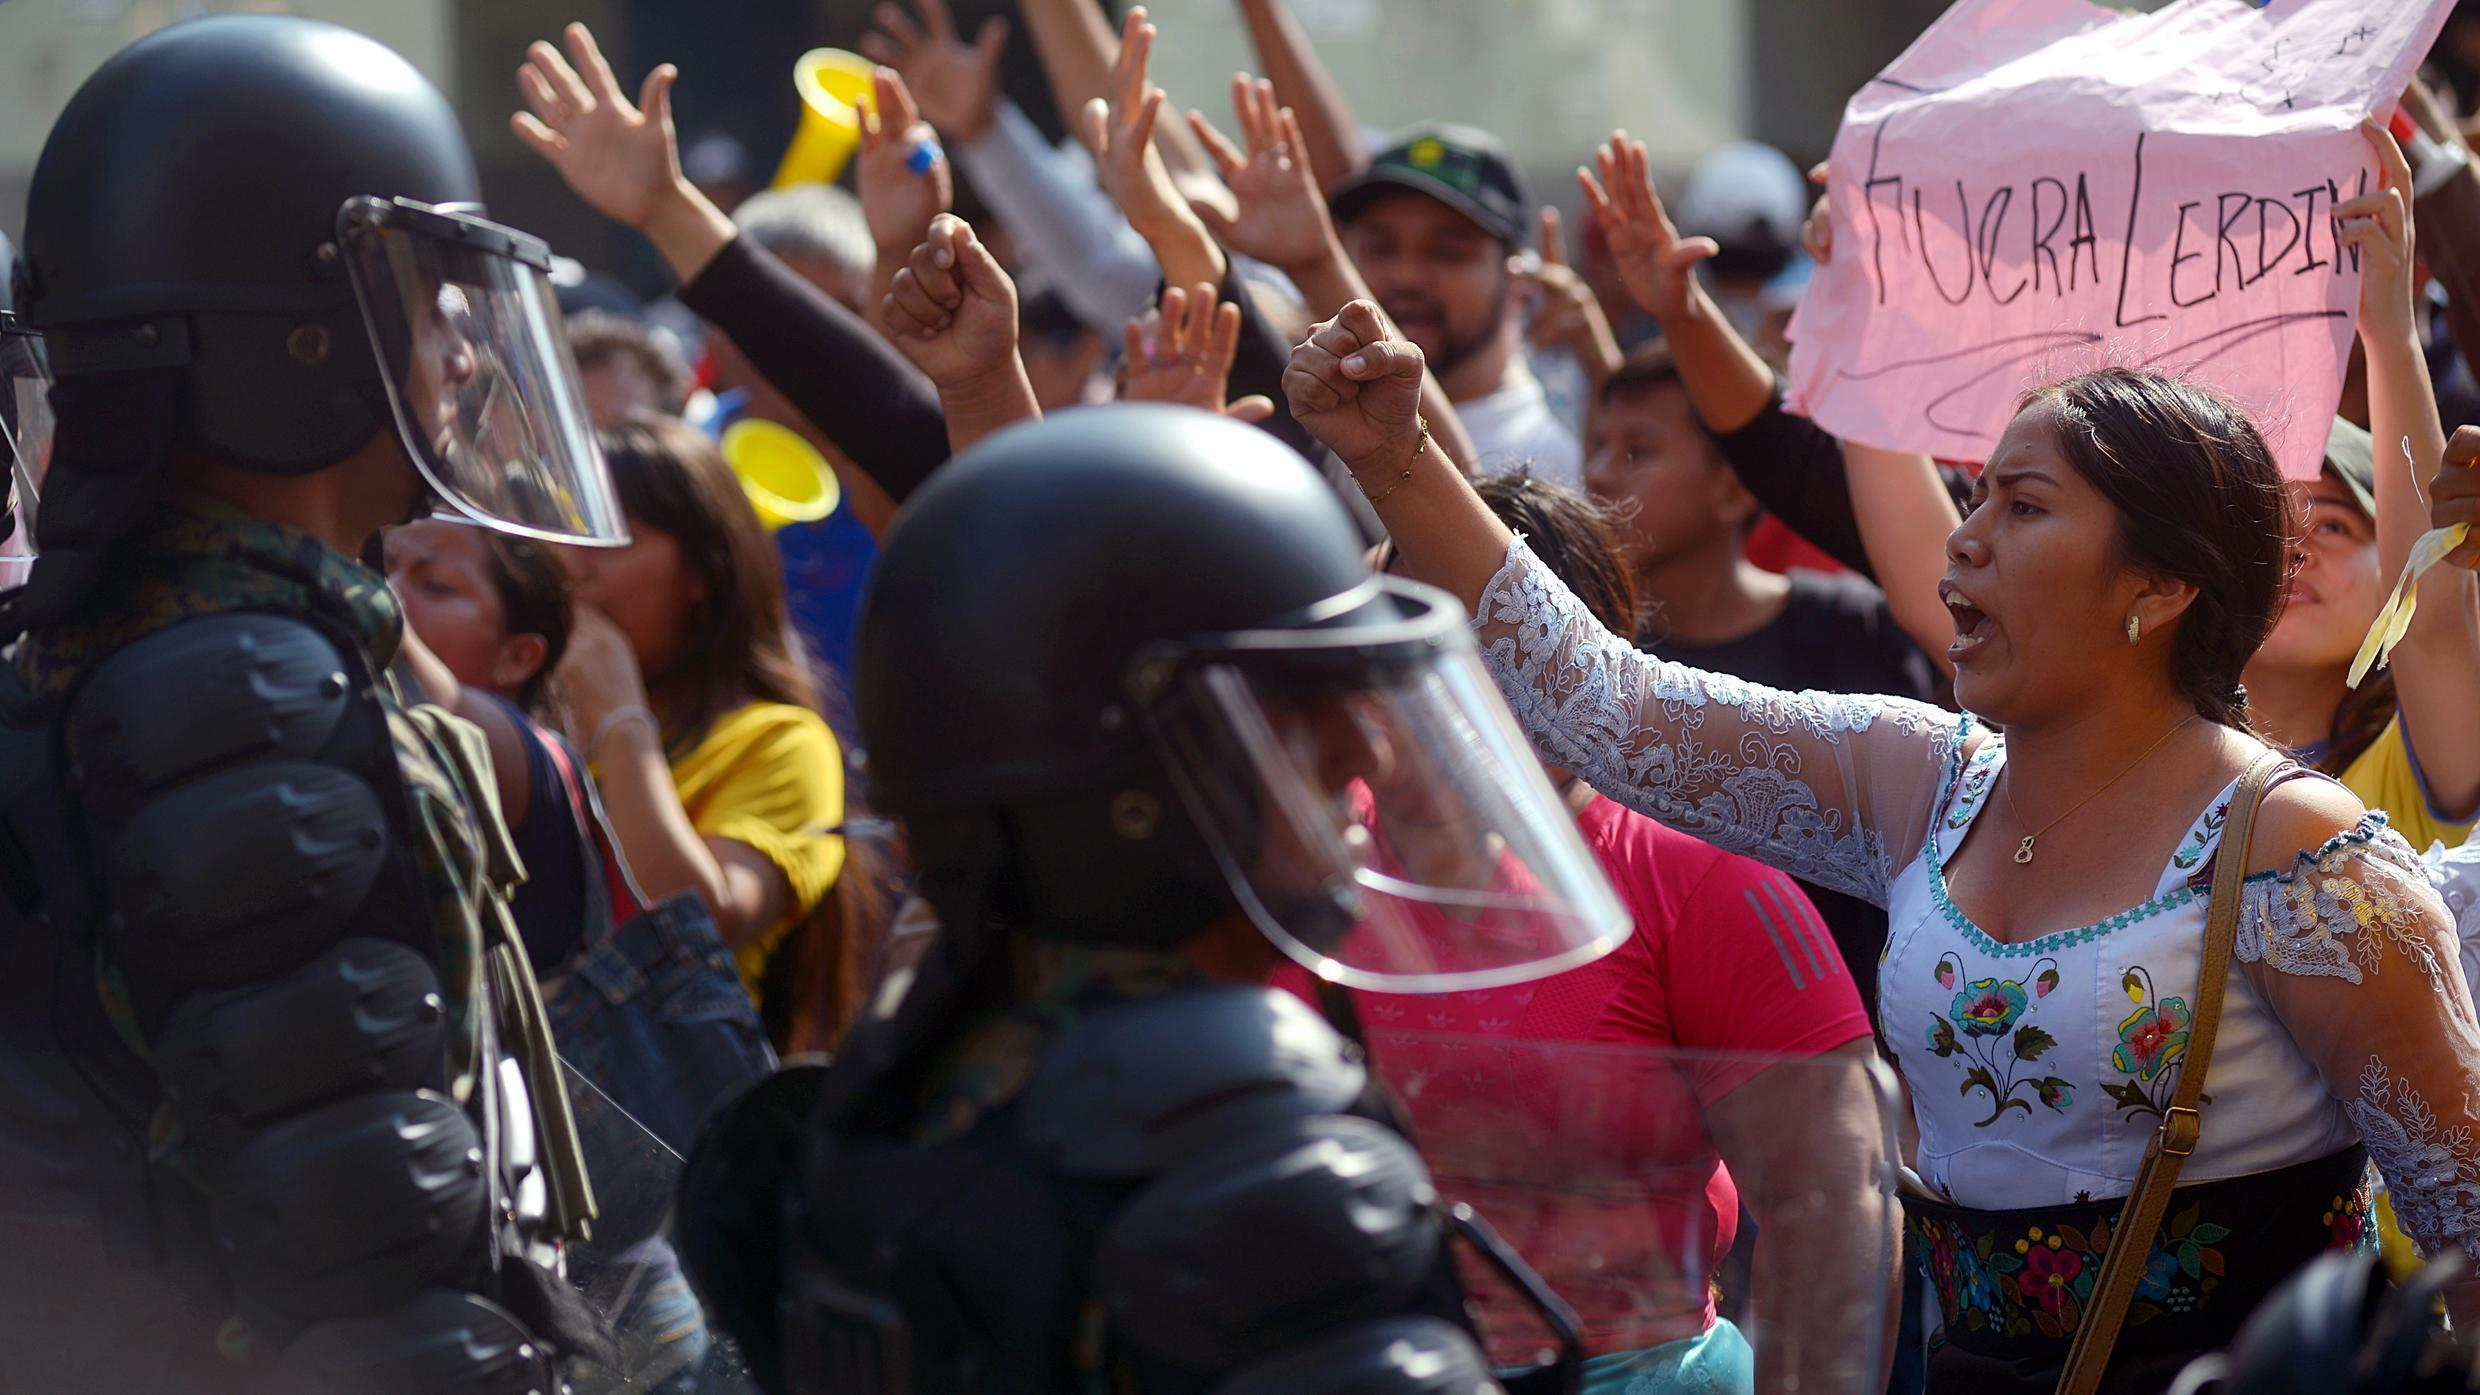 People protest against a fuel price hike ordered by the government to secure an IMF loan in front of riot police in Guayaquil, Ecuador on October 9, 2019.